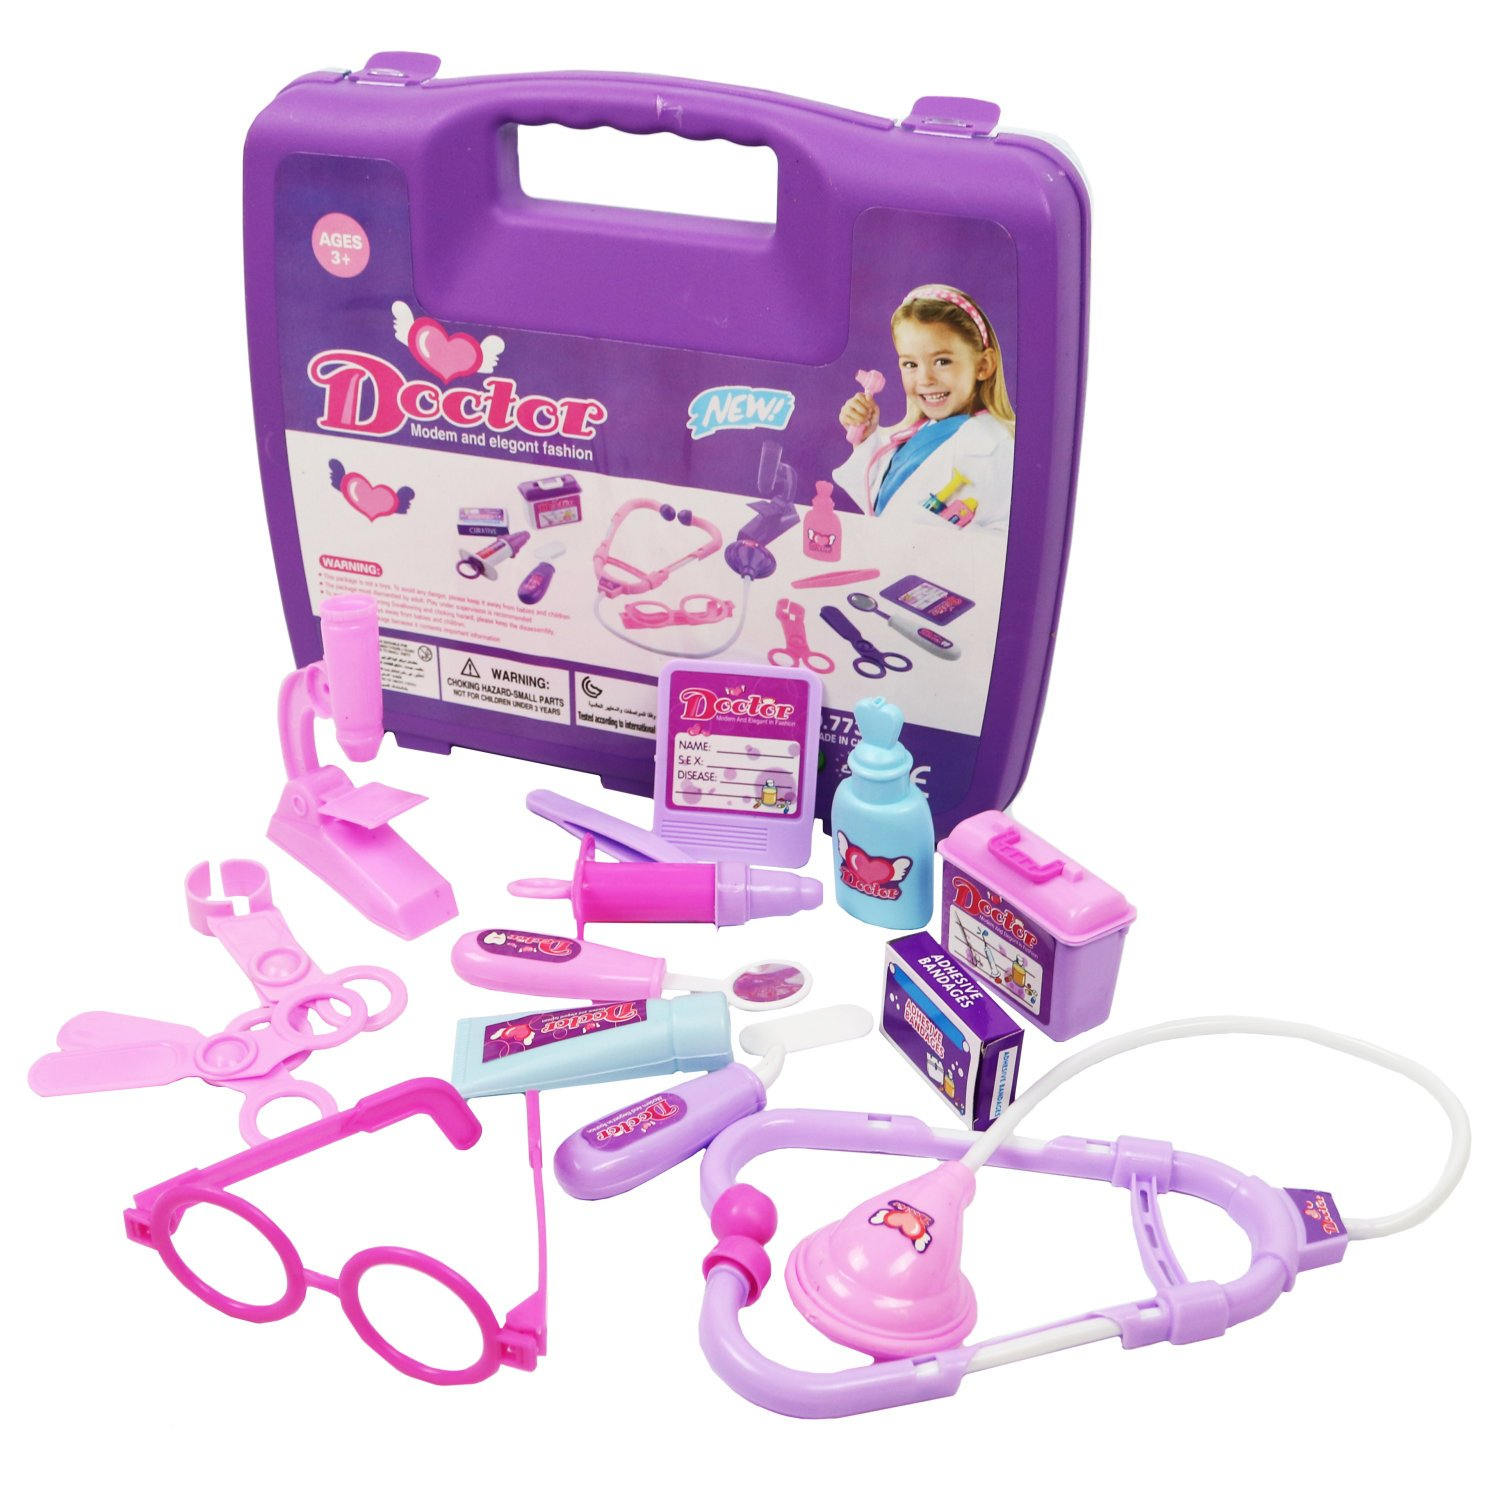 Toy Medical Kit : Pink childrens kids role play doctor nurses toy set